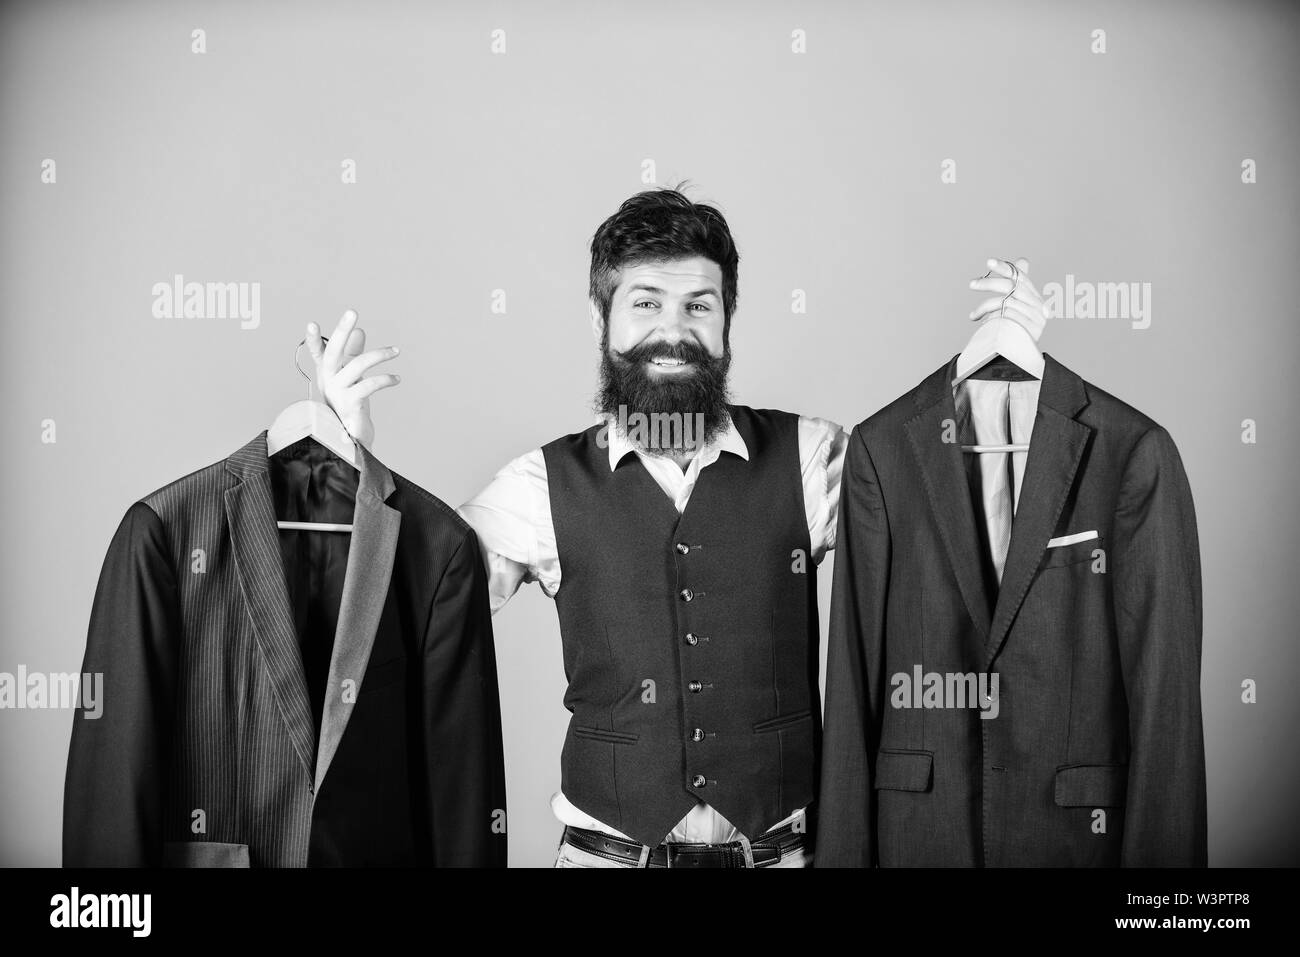 Man bearded fashion couturier tailor. Elegant custom outfit. Tailoring and clothes design. Perfect fit. Custom made to measure. Tailored suit concept. Designing made to measure suit. Custom made suit. - Stock Image